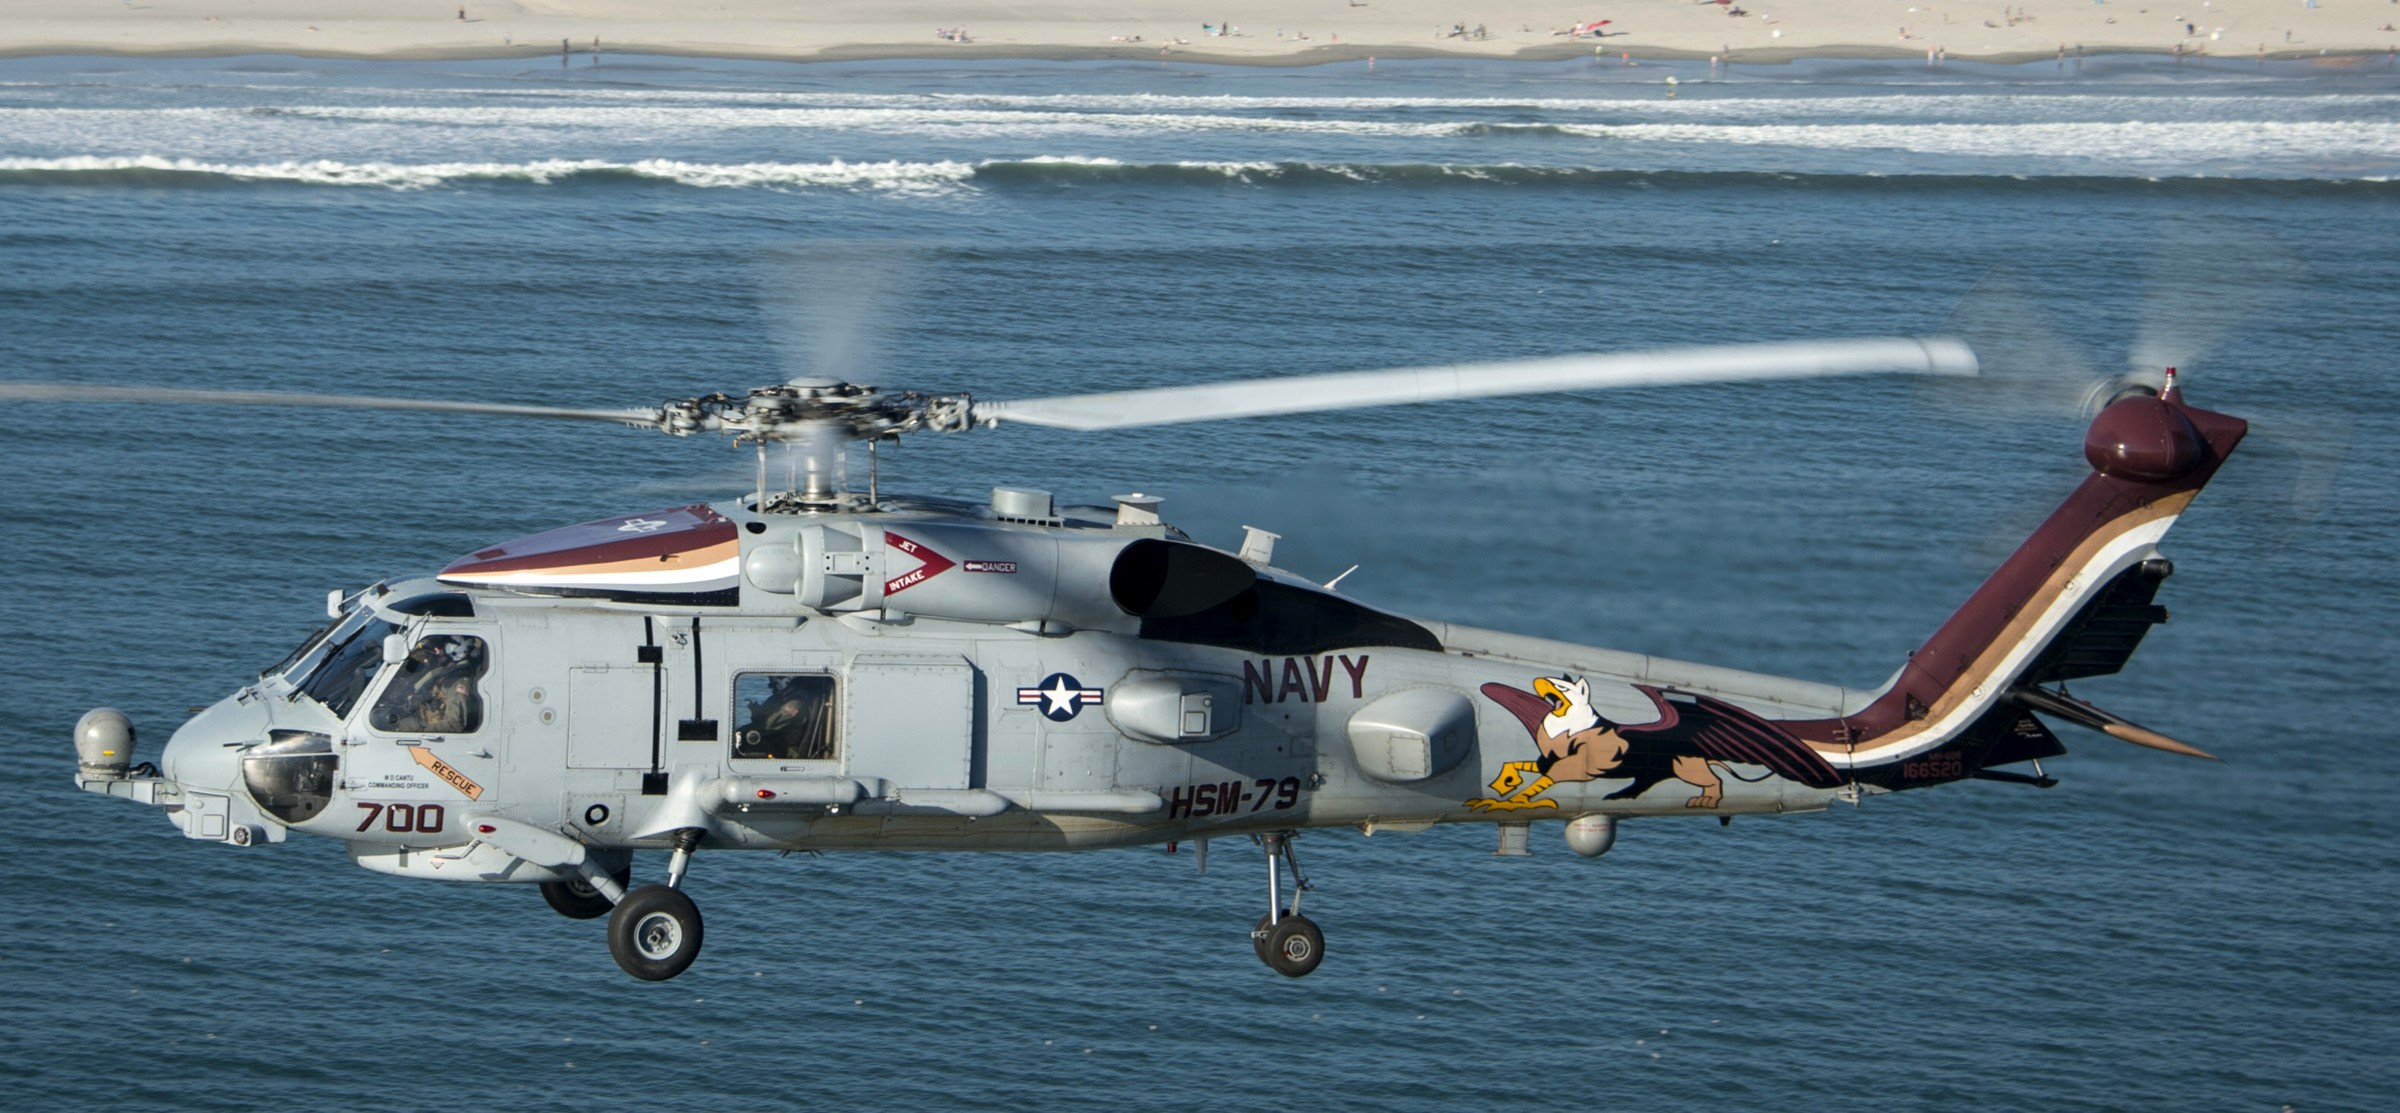 HSM-79 Griffins Helicopter Maritime Strike Squadron US Navy